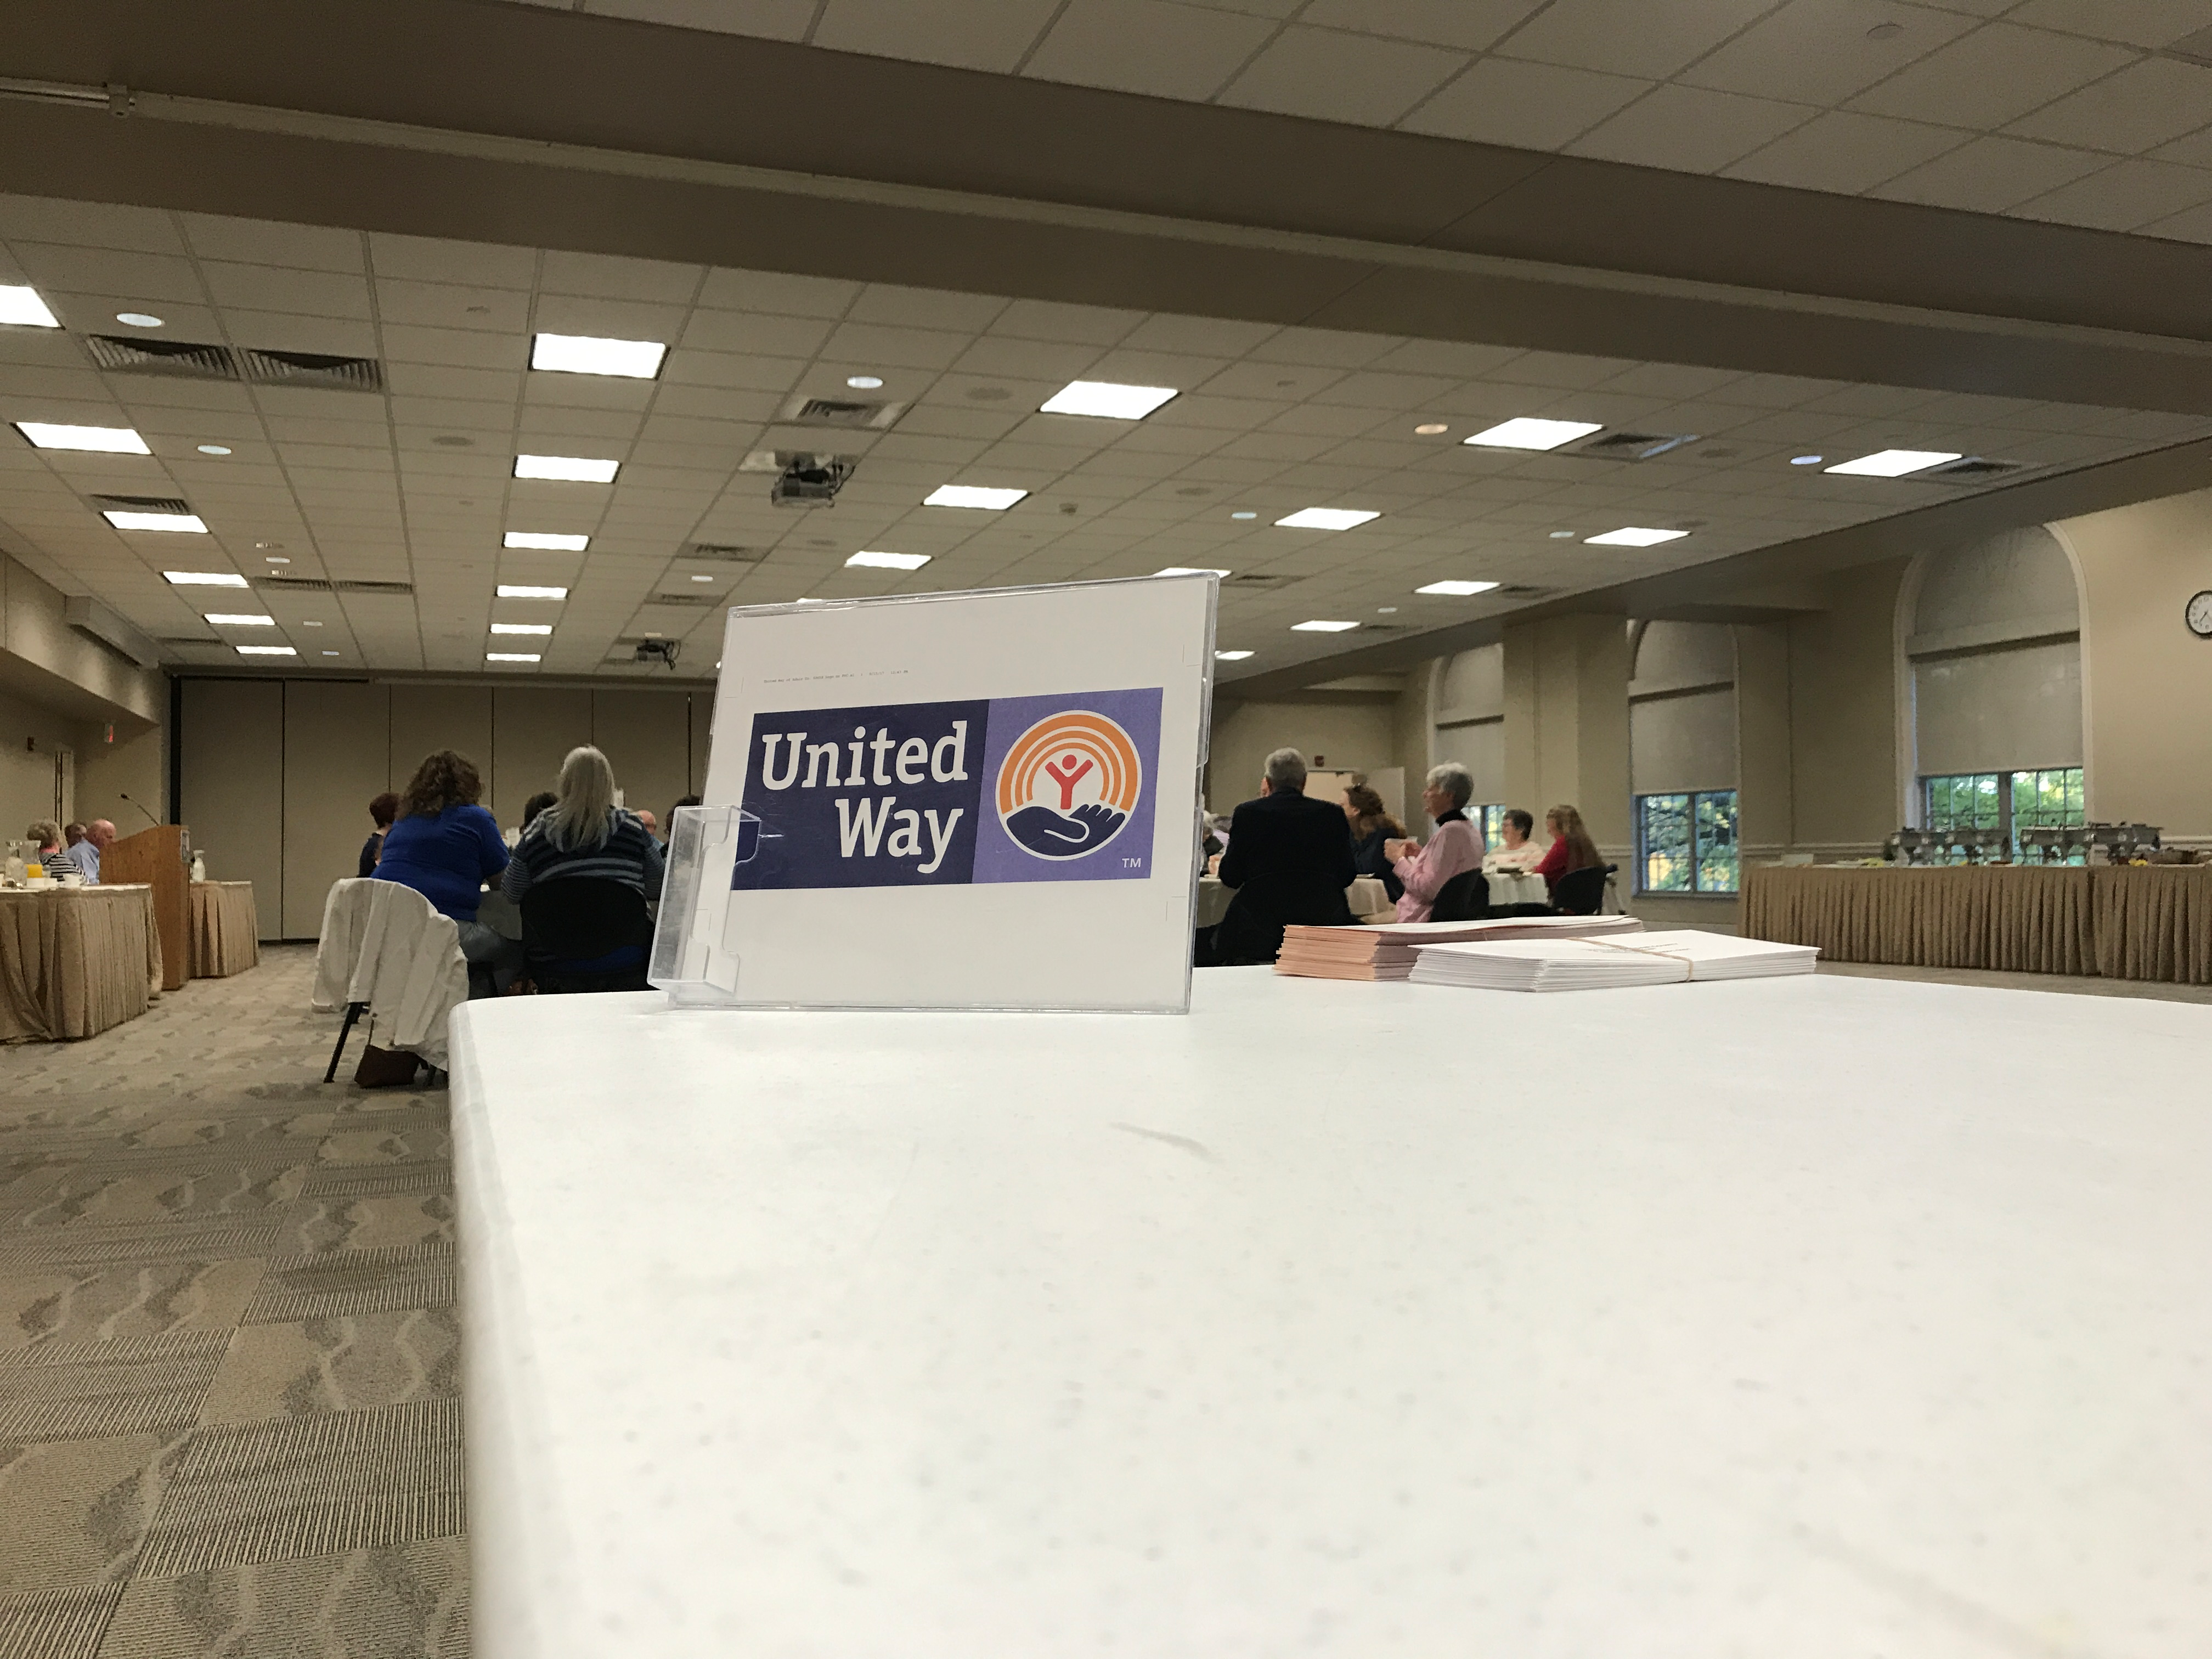 The United Way of Adair County/Northeast Missouri held their annual campaign kick-off breakfast Friday at Truman State University. (KTVO:Riley Fannon)